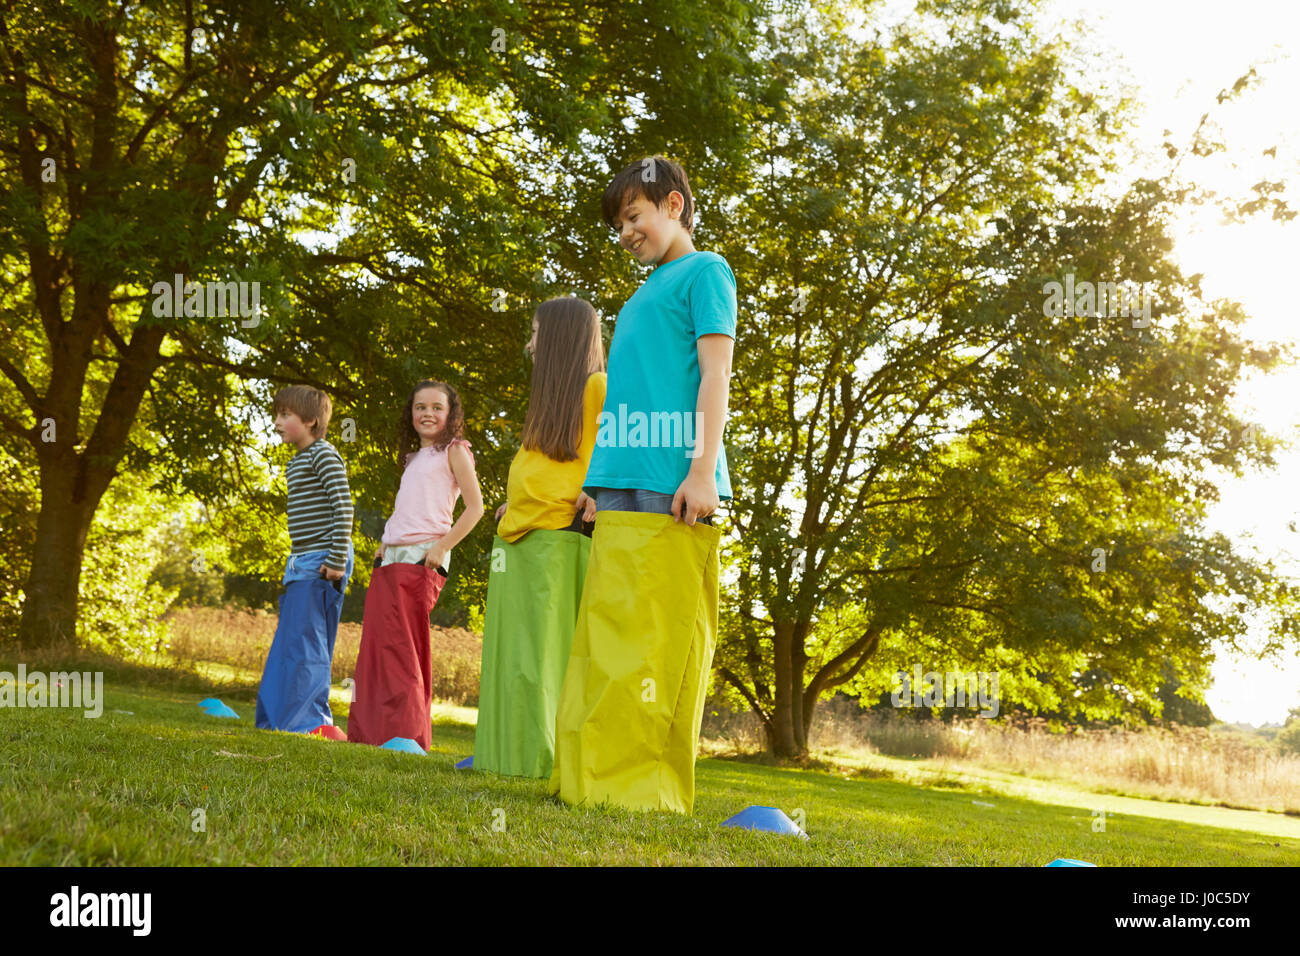 Girls and boys on start line for sack race in park - Stock Image